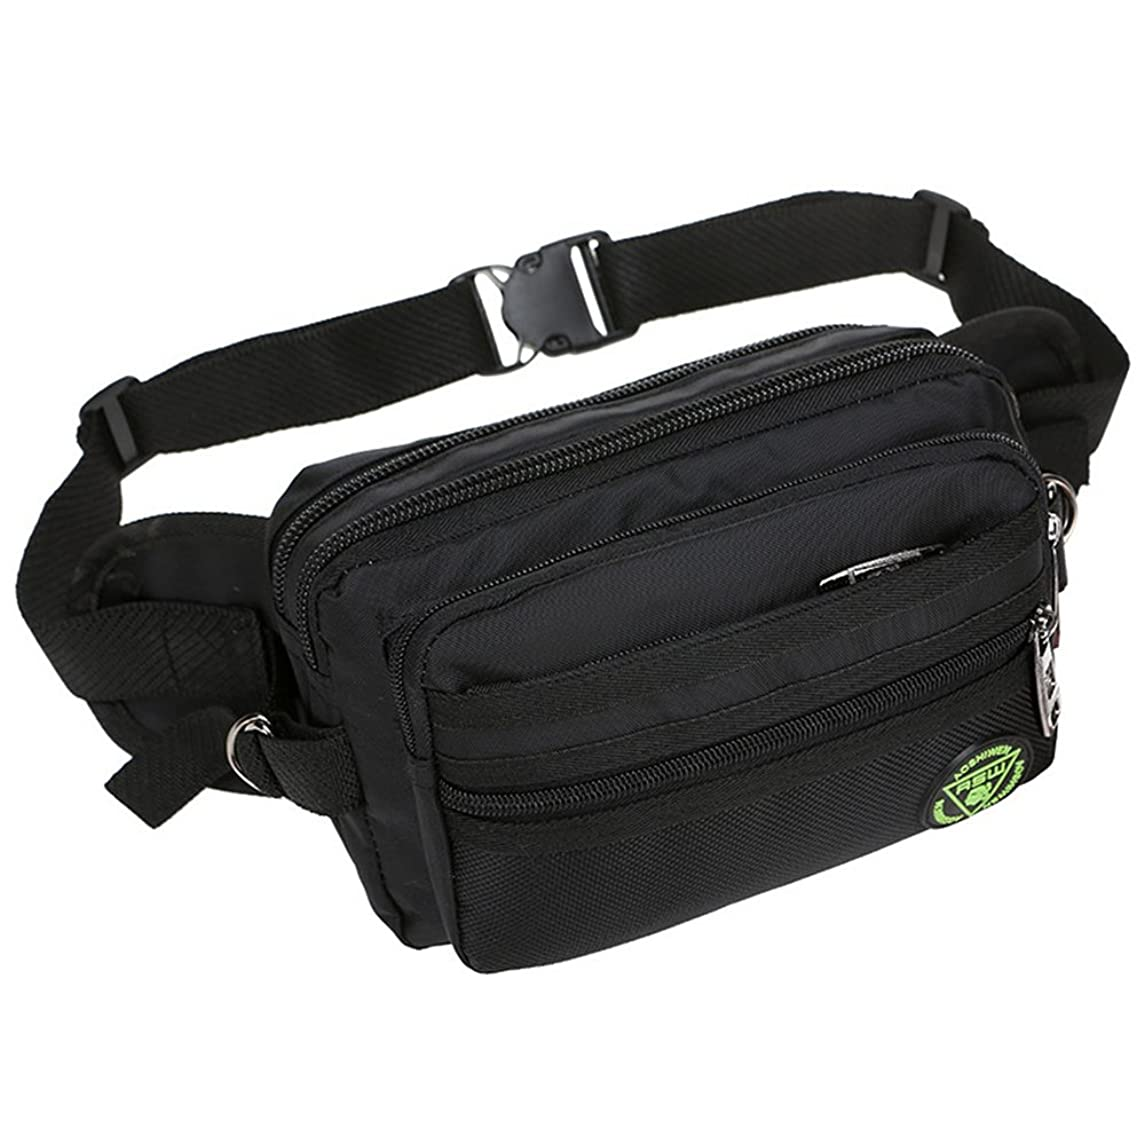 TOP-UP Strongest Men's Multi-Functional Waist Pack Waist Bag Fanny Bag Hiking Camping,Travel Other Outdoor Activities